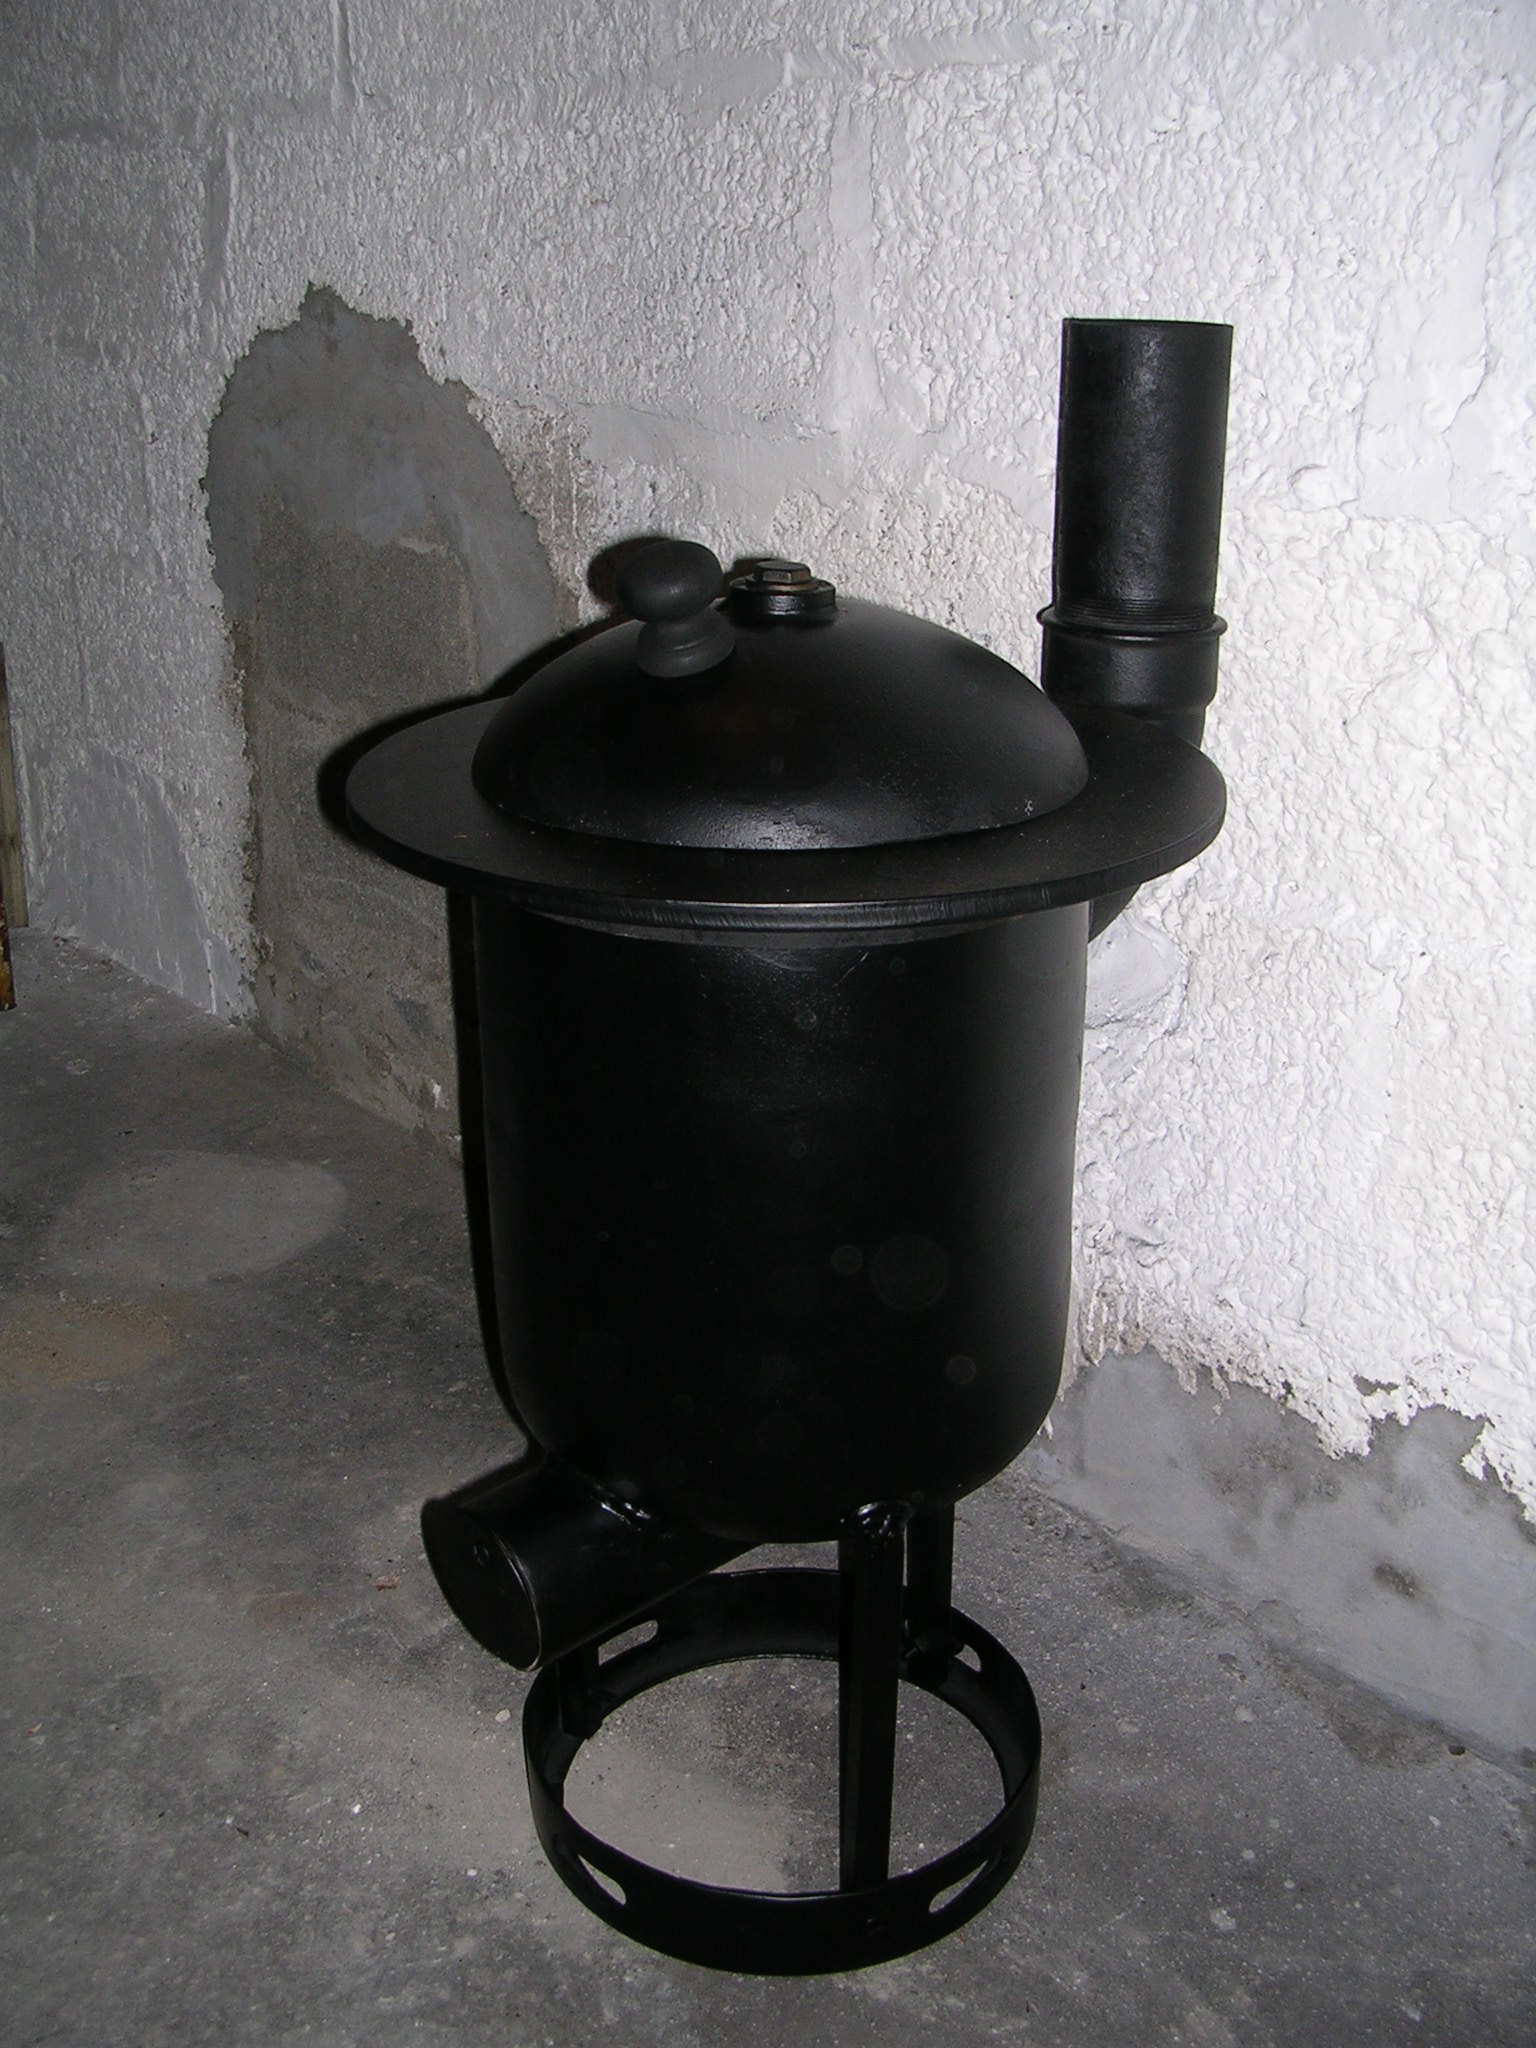 DIY wood burner Pot Belly Stove. made from a gas tank